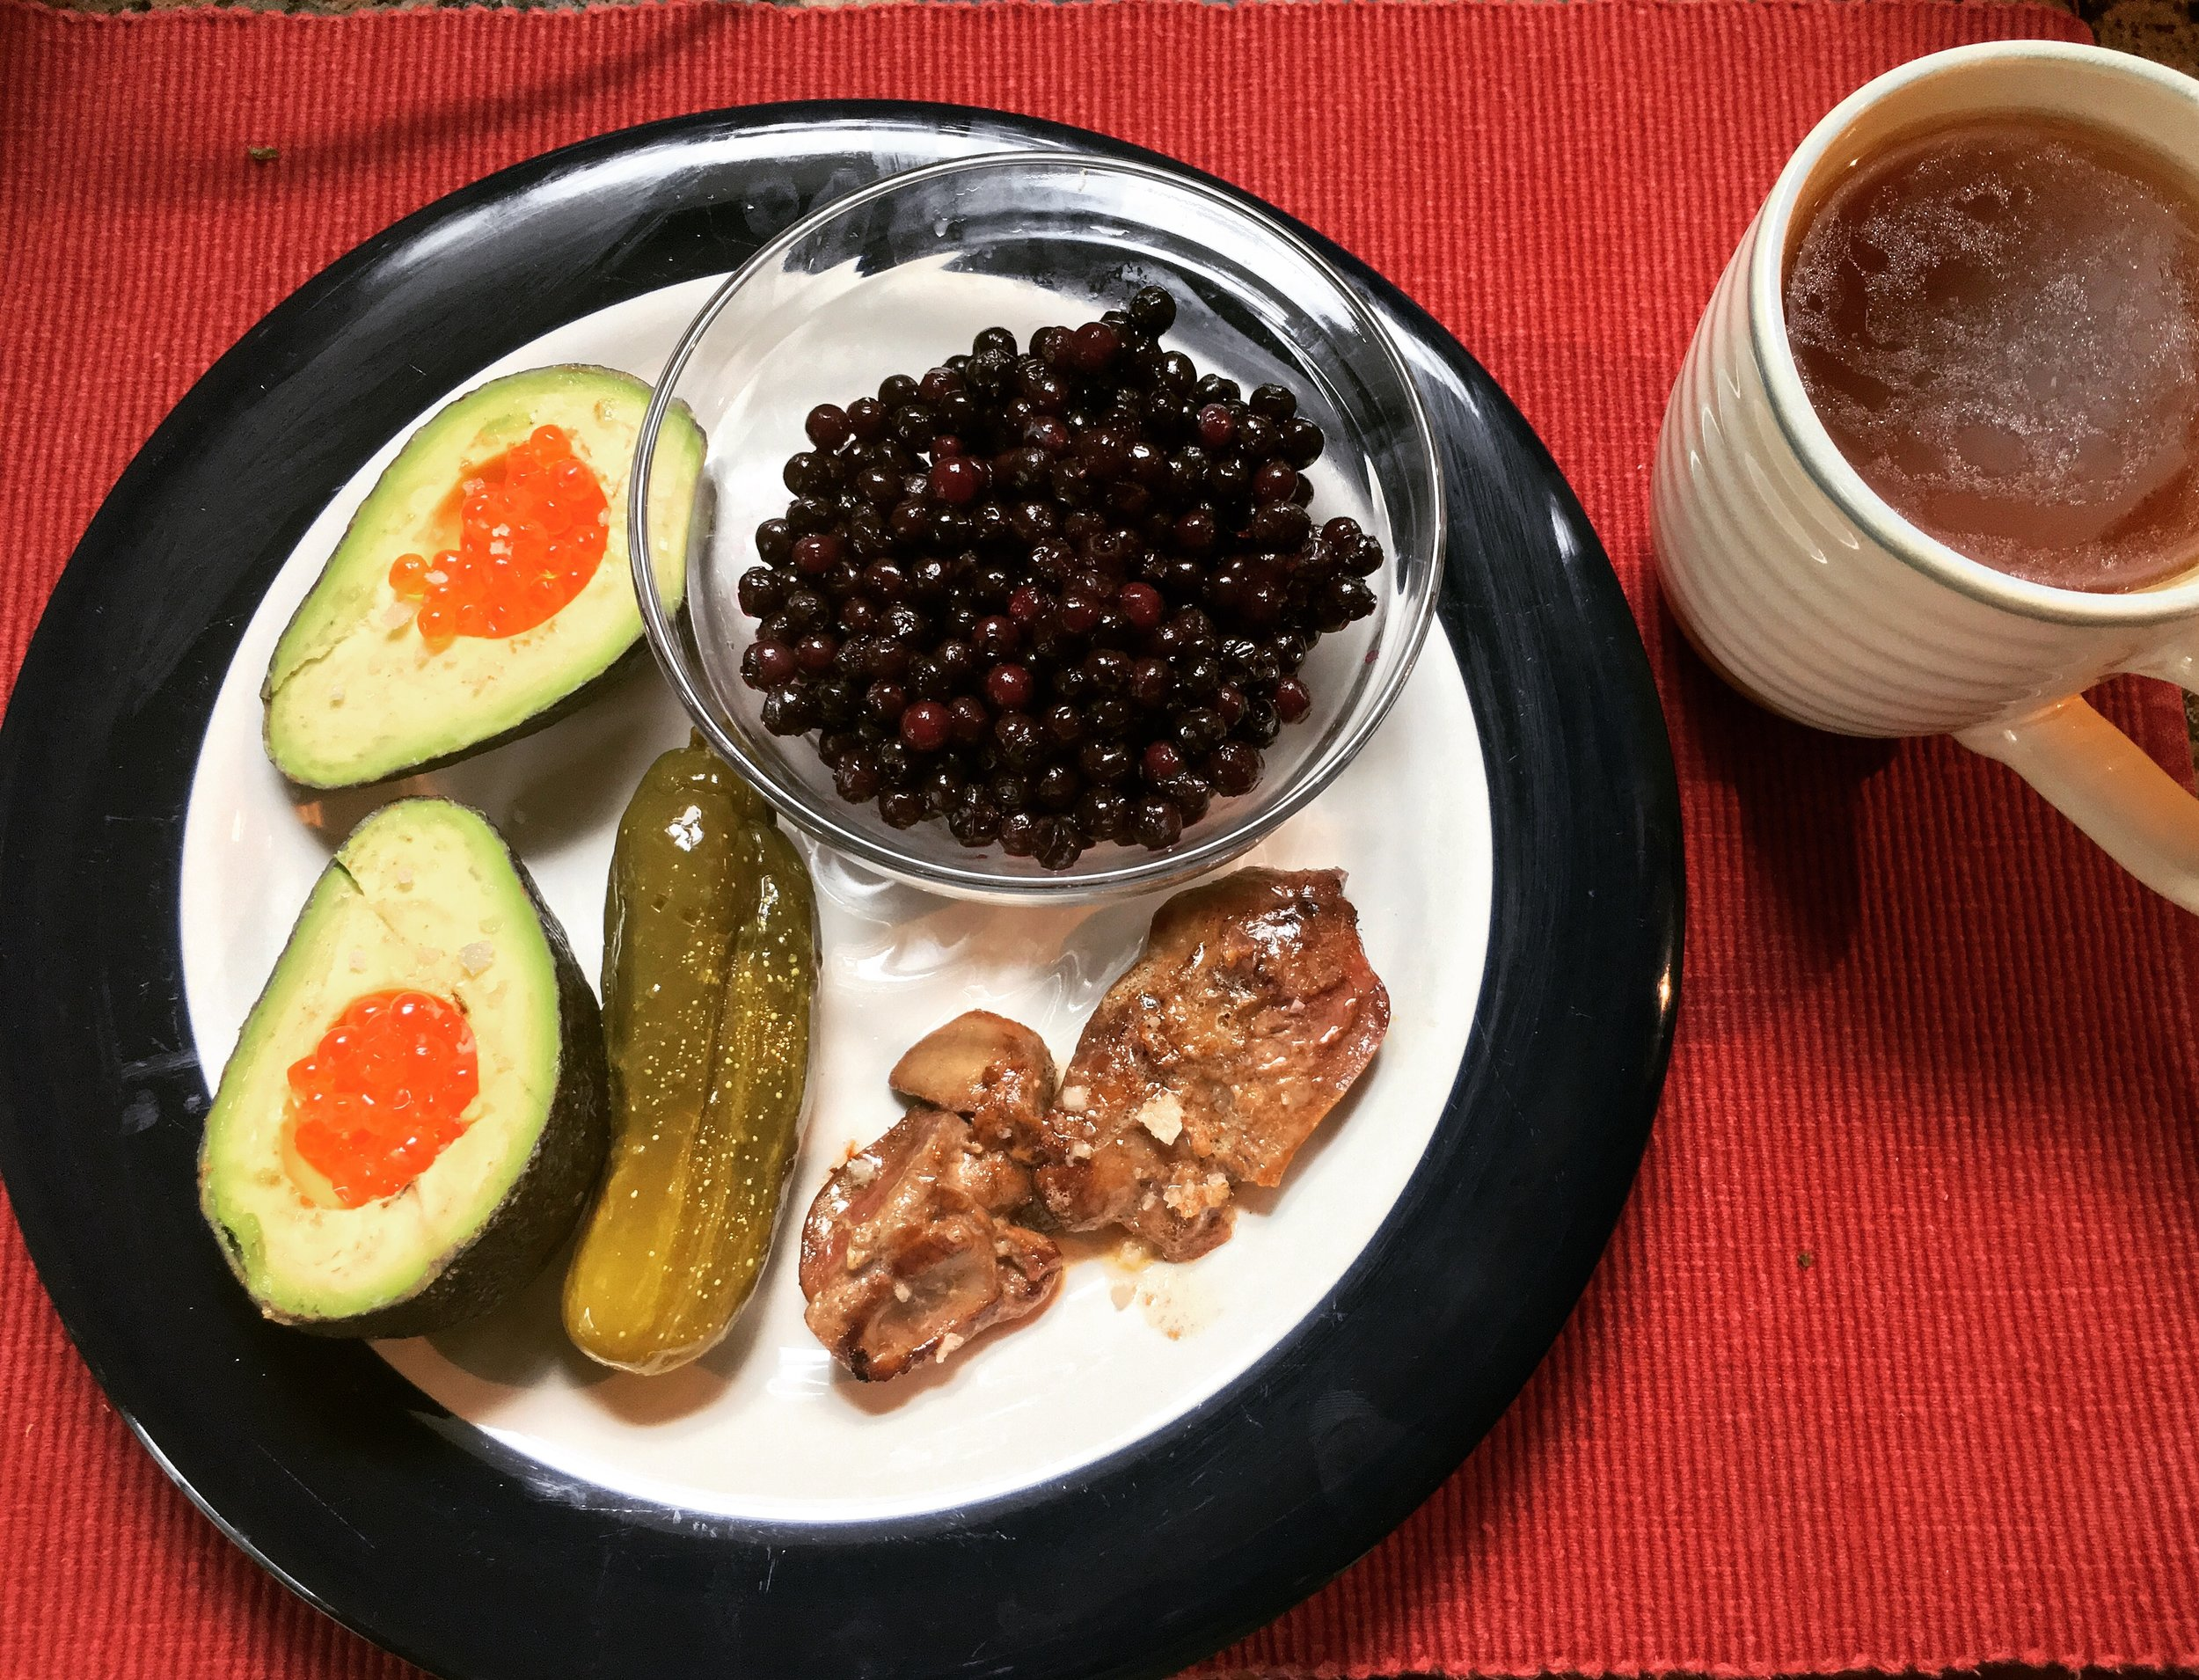 This is an example of a highly nutrient-dense breakfast:  Chicken liver seared in grass-fed butter with truffle sea salt, fermented pickle (probiotic), whole avocado with caviar/salmon roe, organic blueberries and homemade broth.